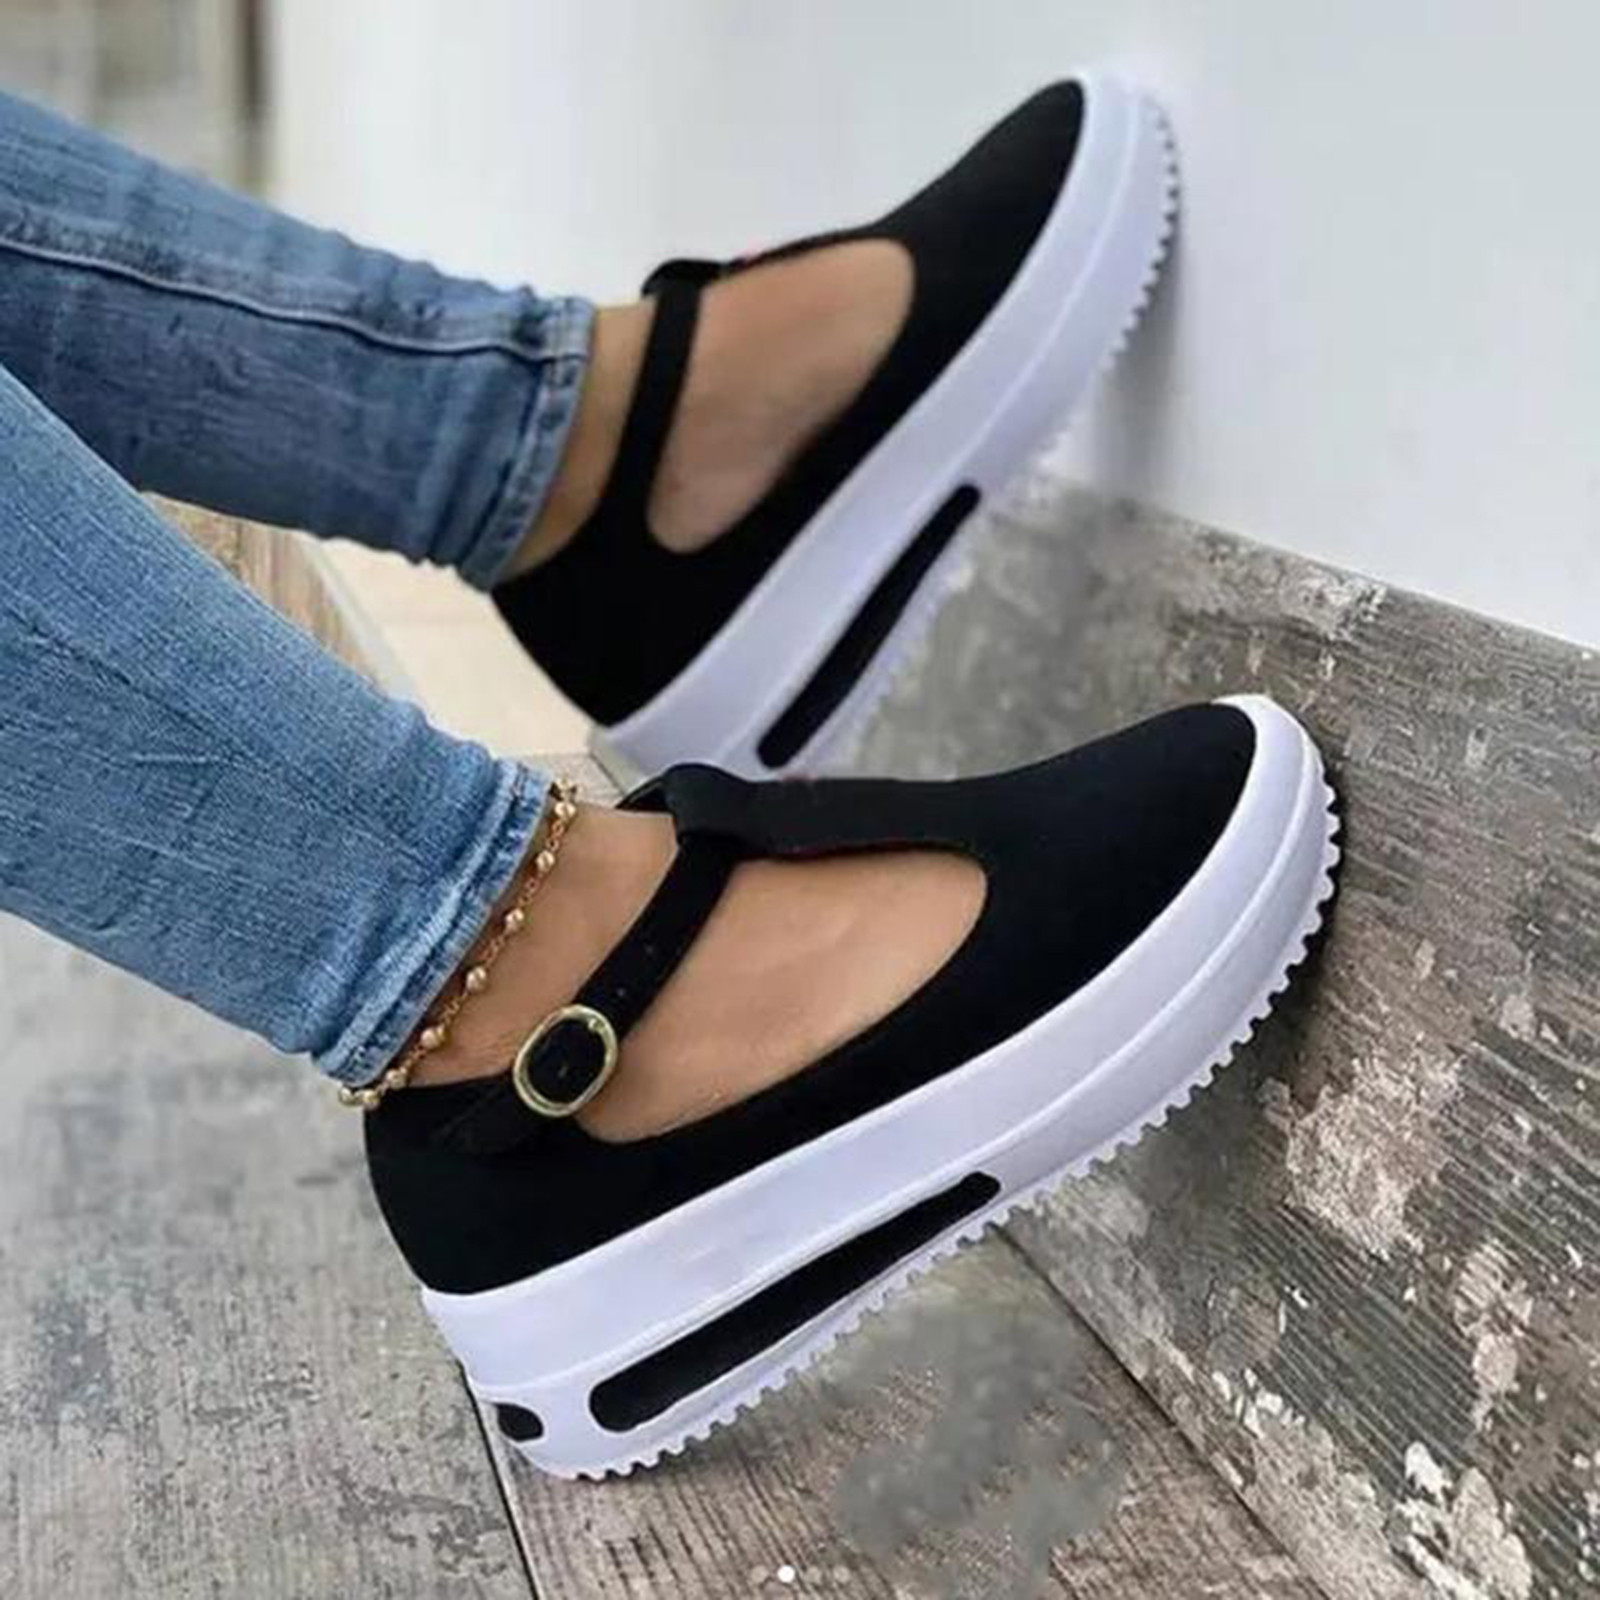 New Women Casual Sandals Ladies Wedge Platform Buckle Strap Sandals Woman Slippers Open Toes Fashion Party Female Shoes 2021